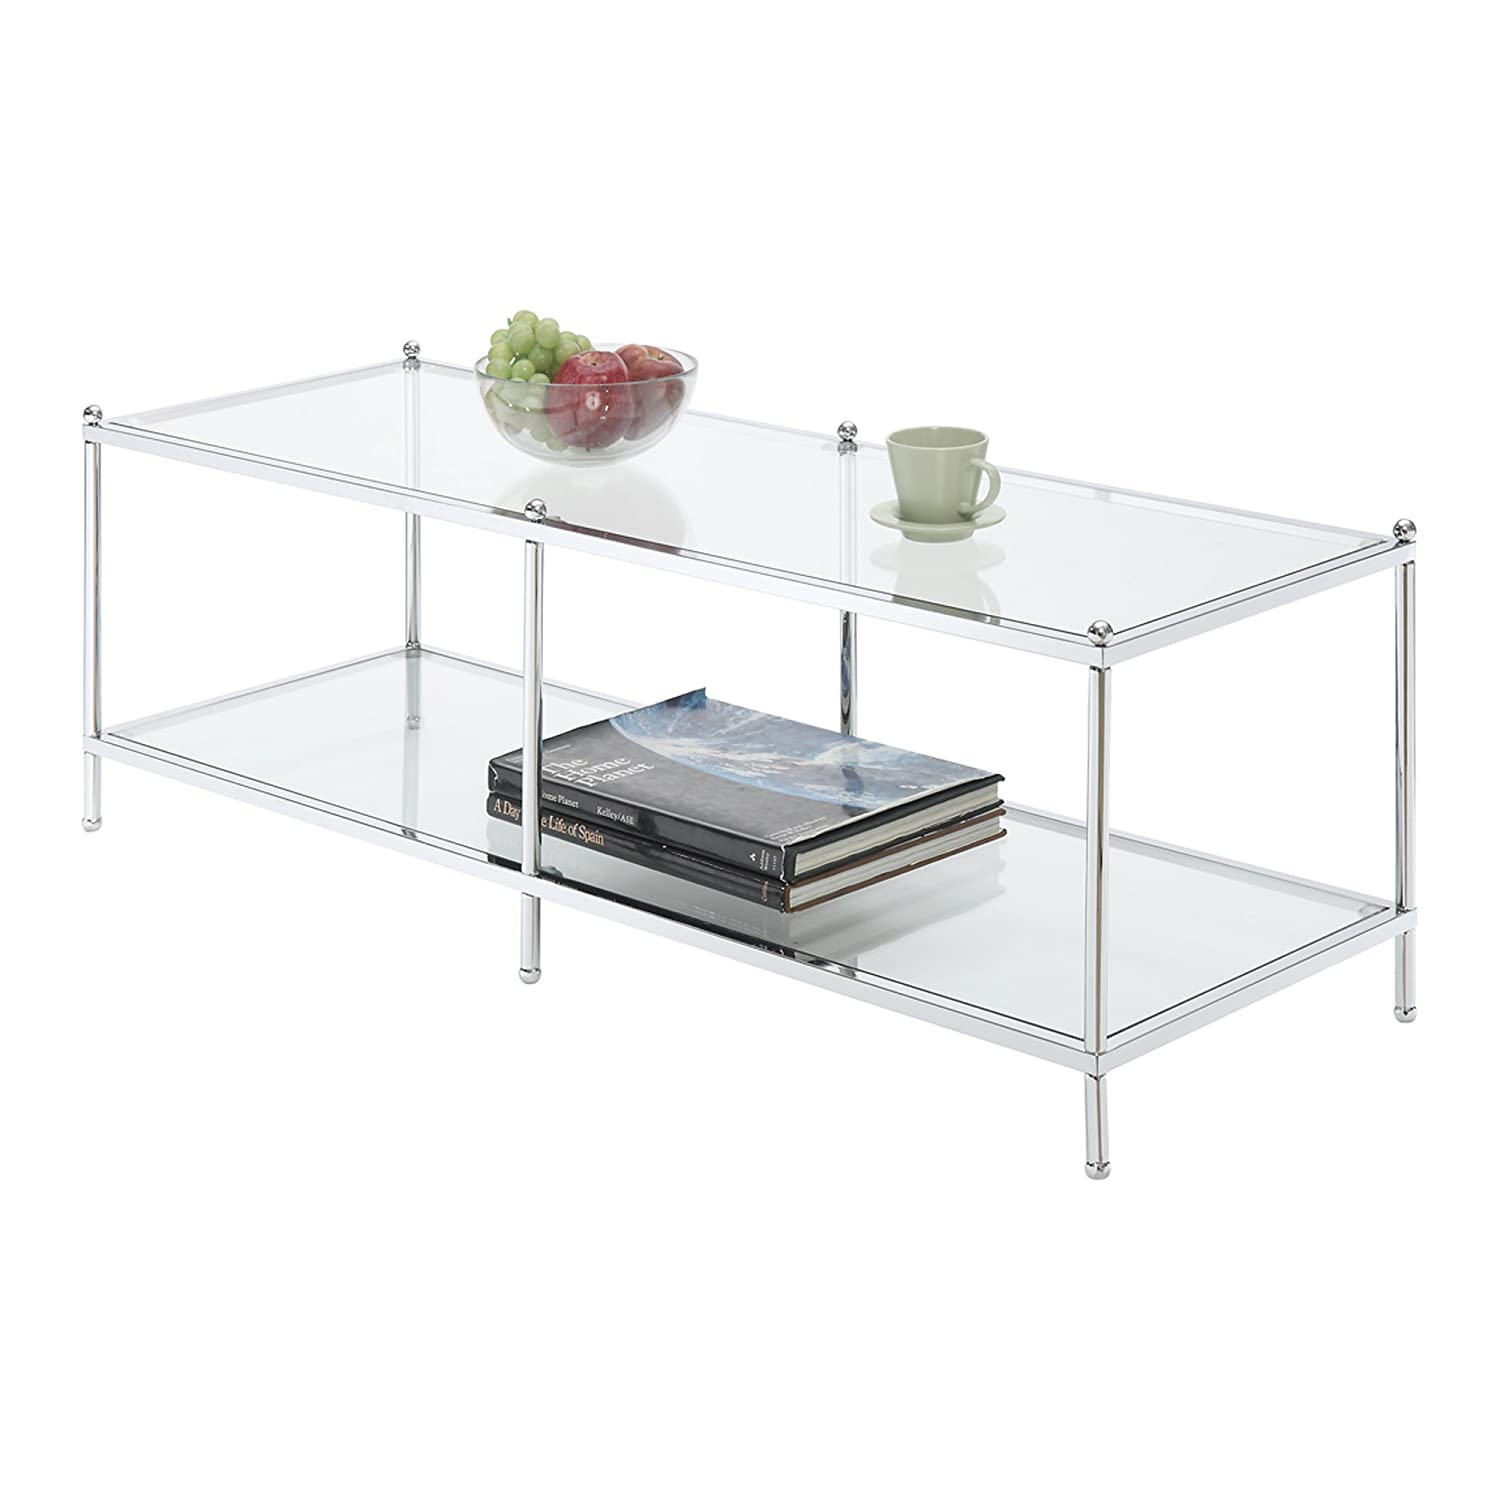 Italian Glass Coffee Table.Amazon Com Svitlife Logan Glass Coffee Tablelogan Glass Coffee